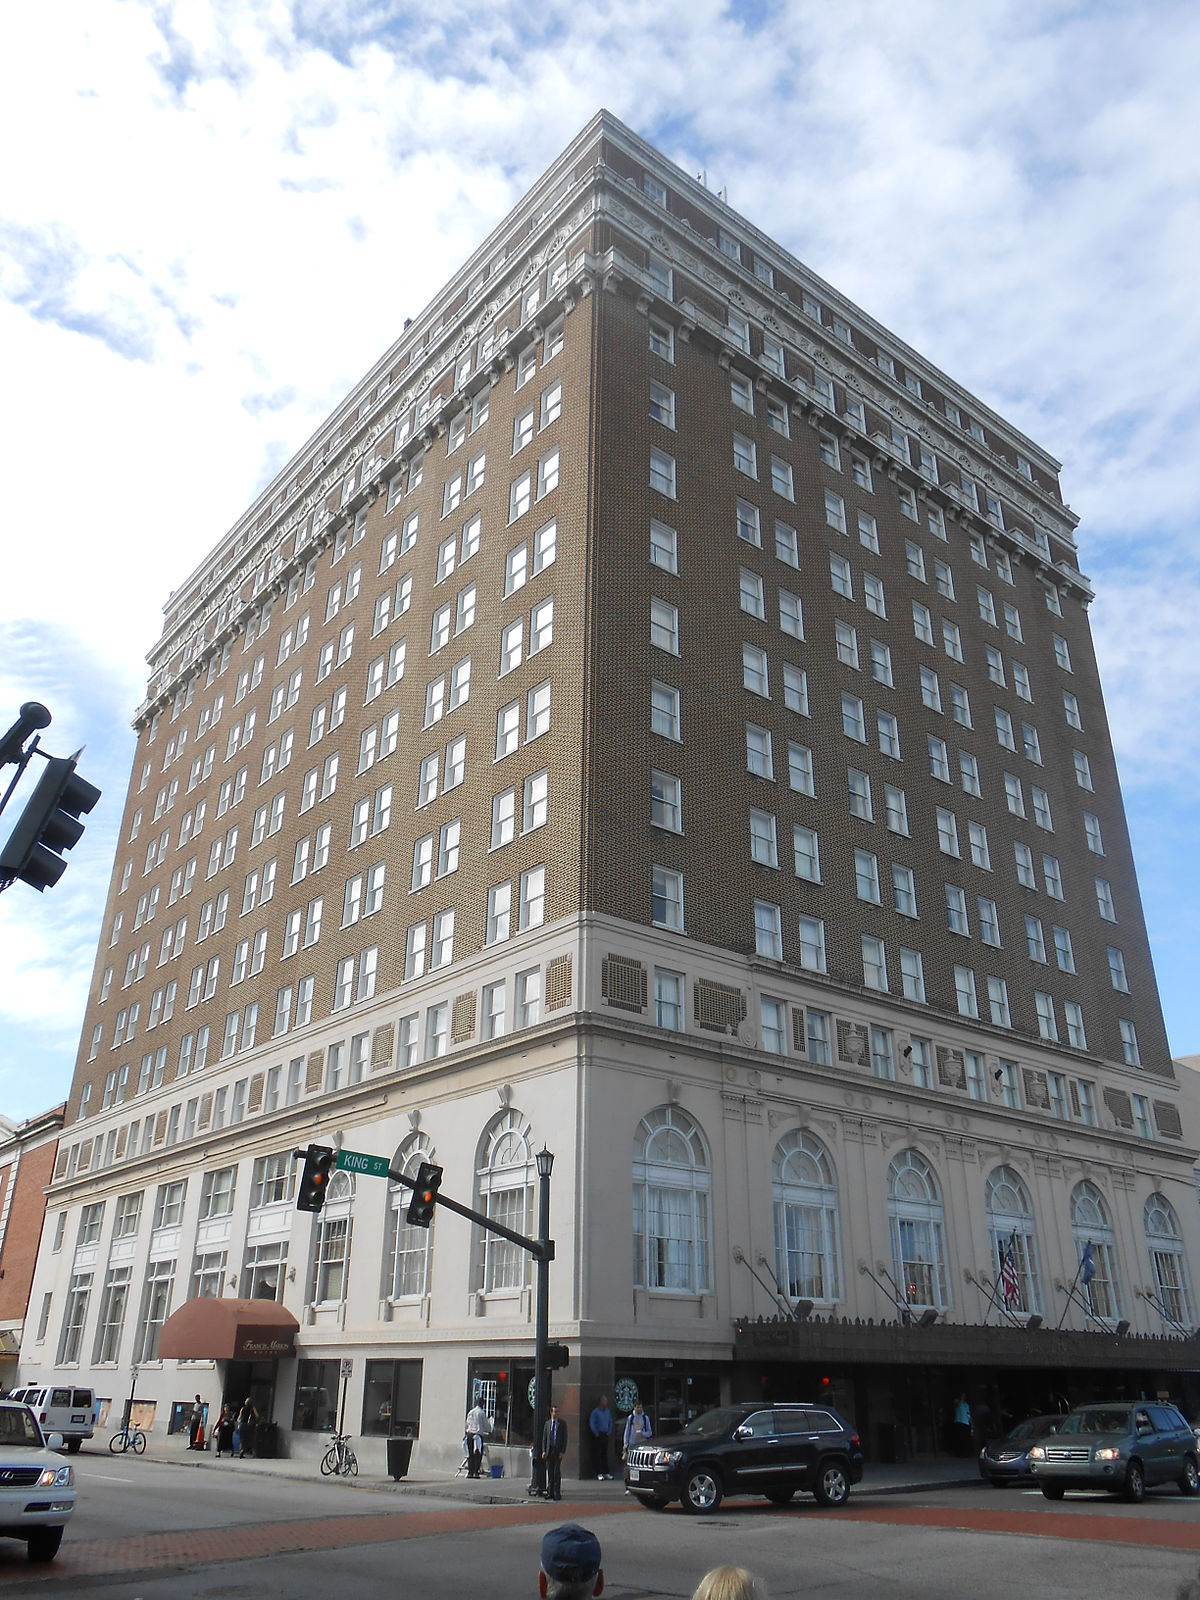 Francis Marion Hotel Wikipedia